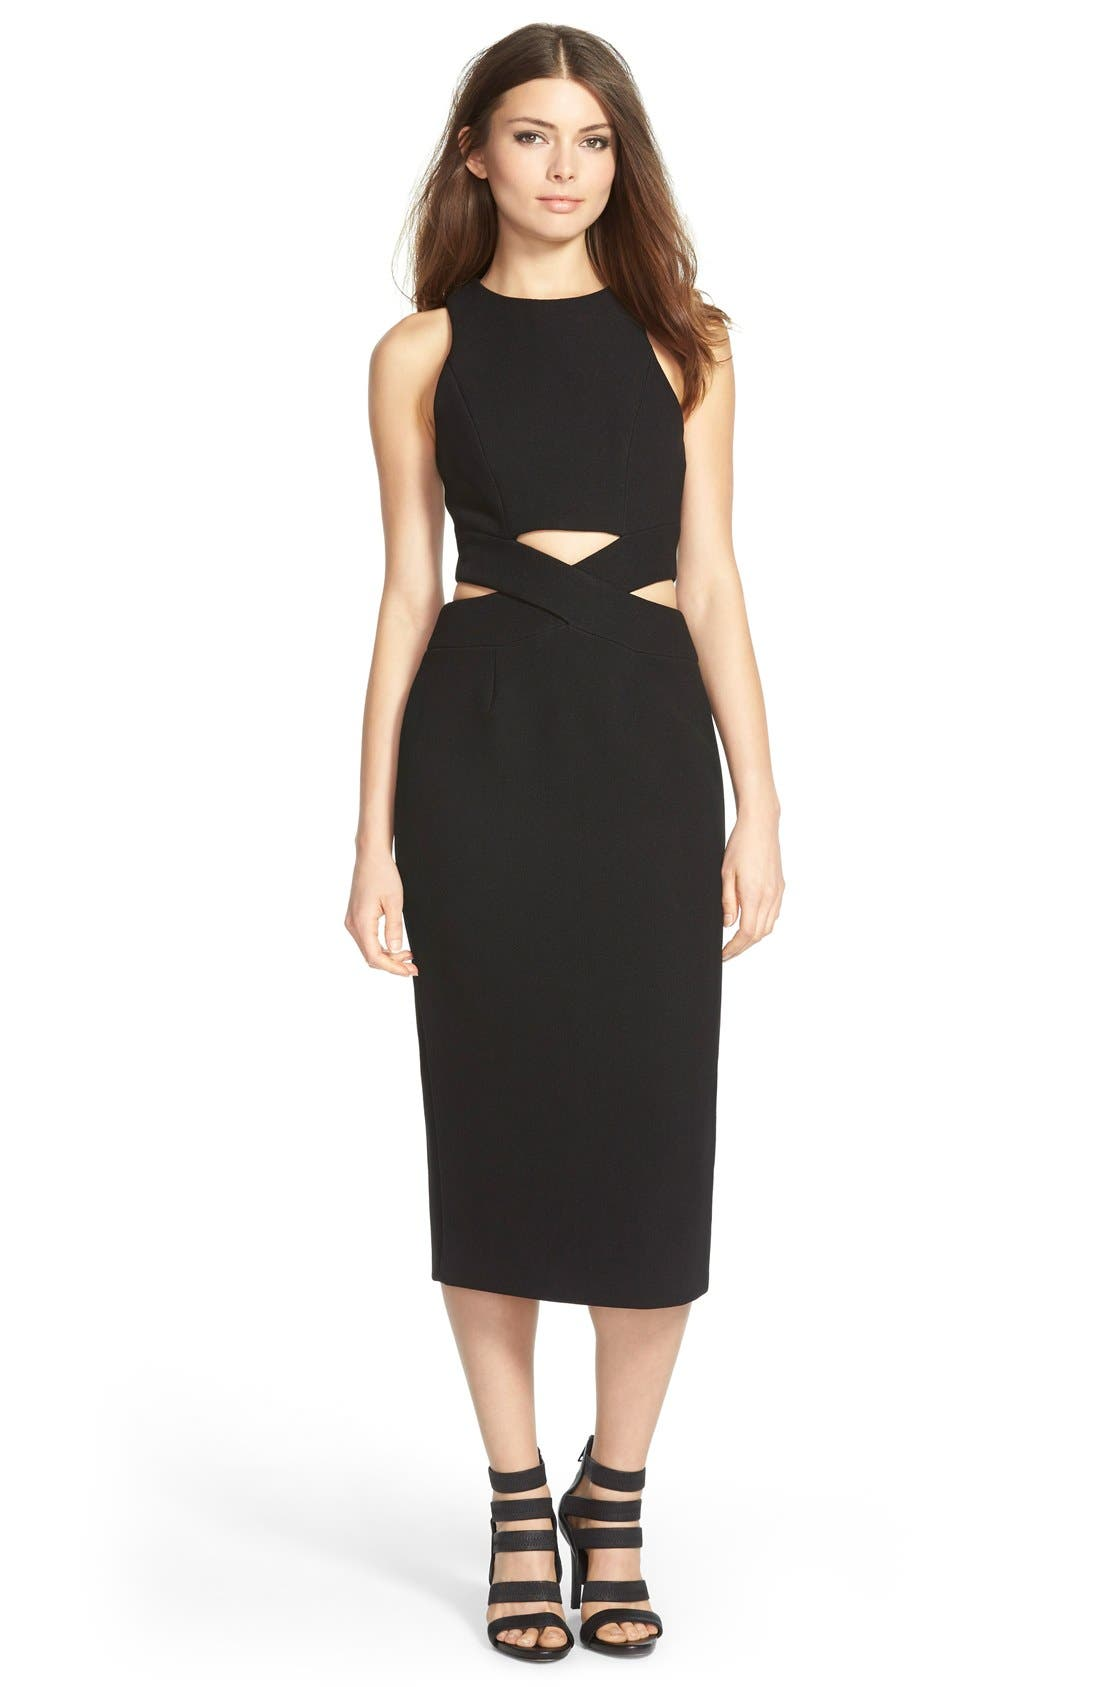 Alternate Image 1 Selected - Finders Keepers the Label 'Take Me Out' MidiDress